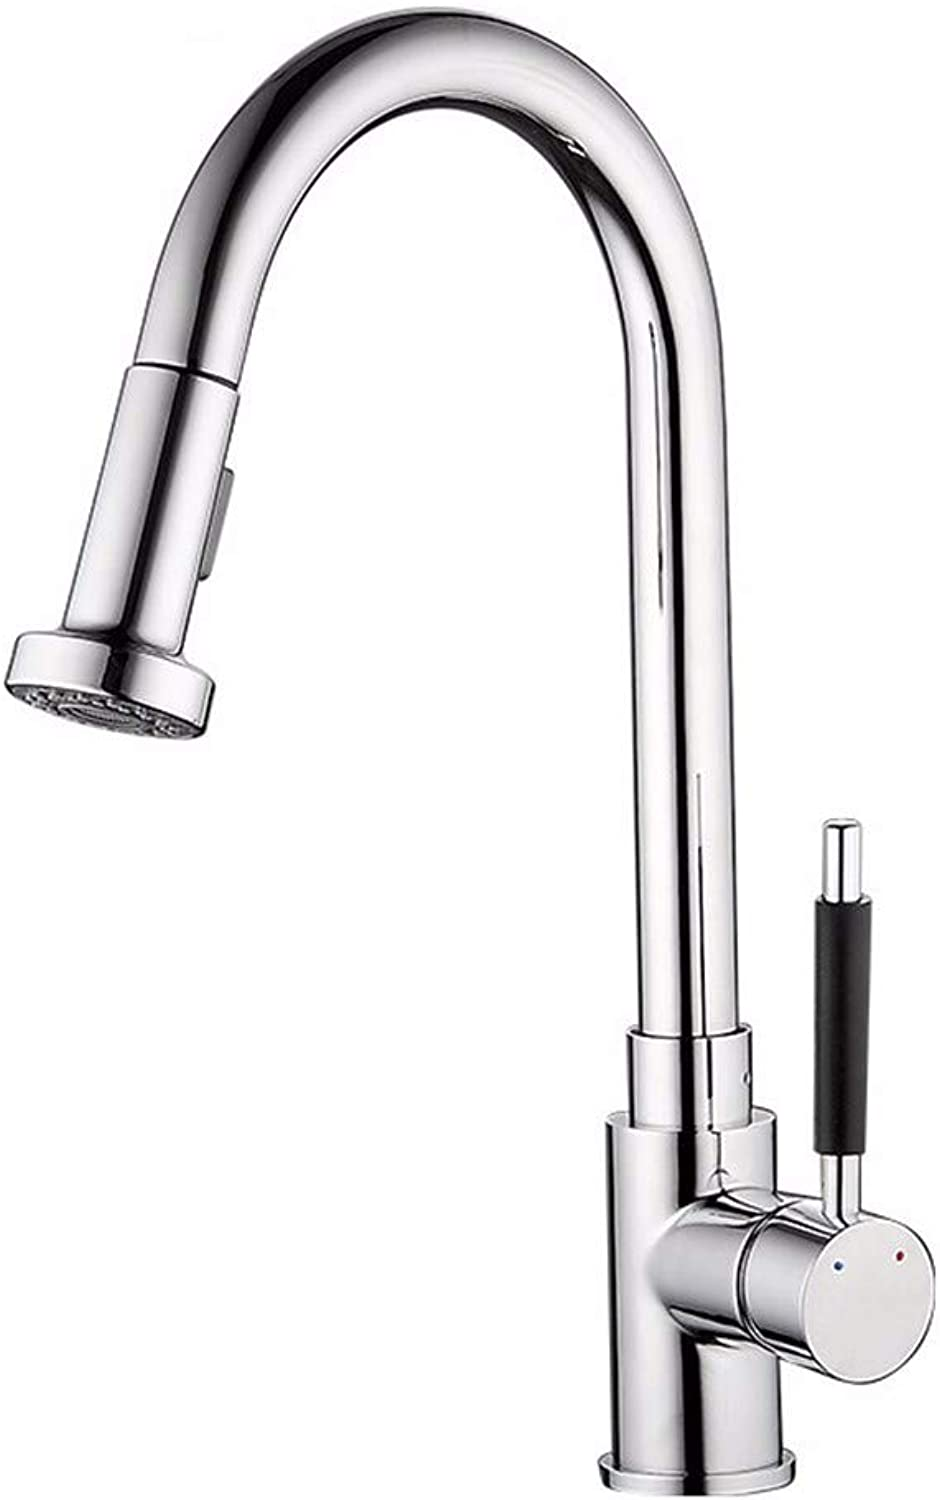 Home kitchen multi-function hot and cold pull faucet retractable stretchable single-type faucet greenical faucet